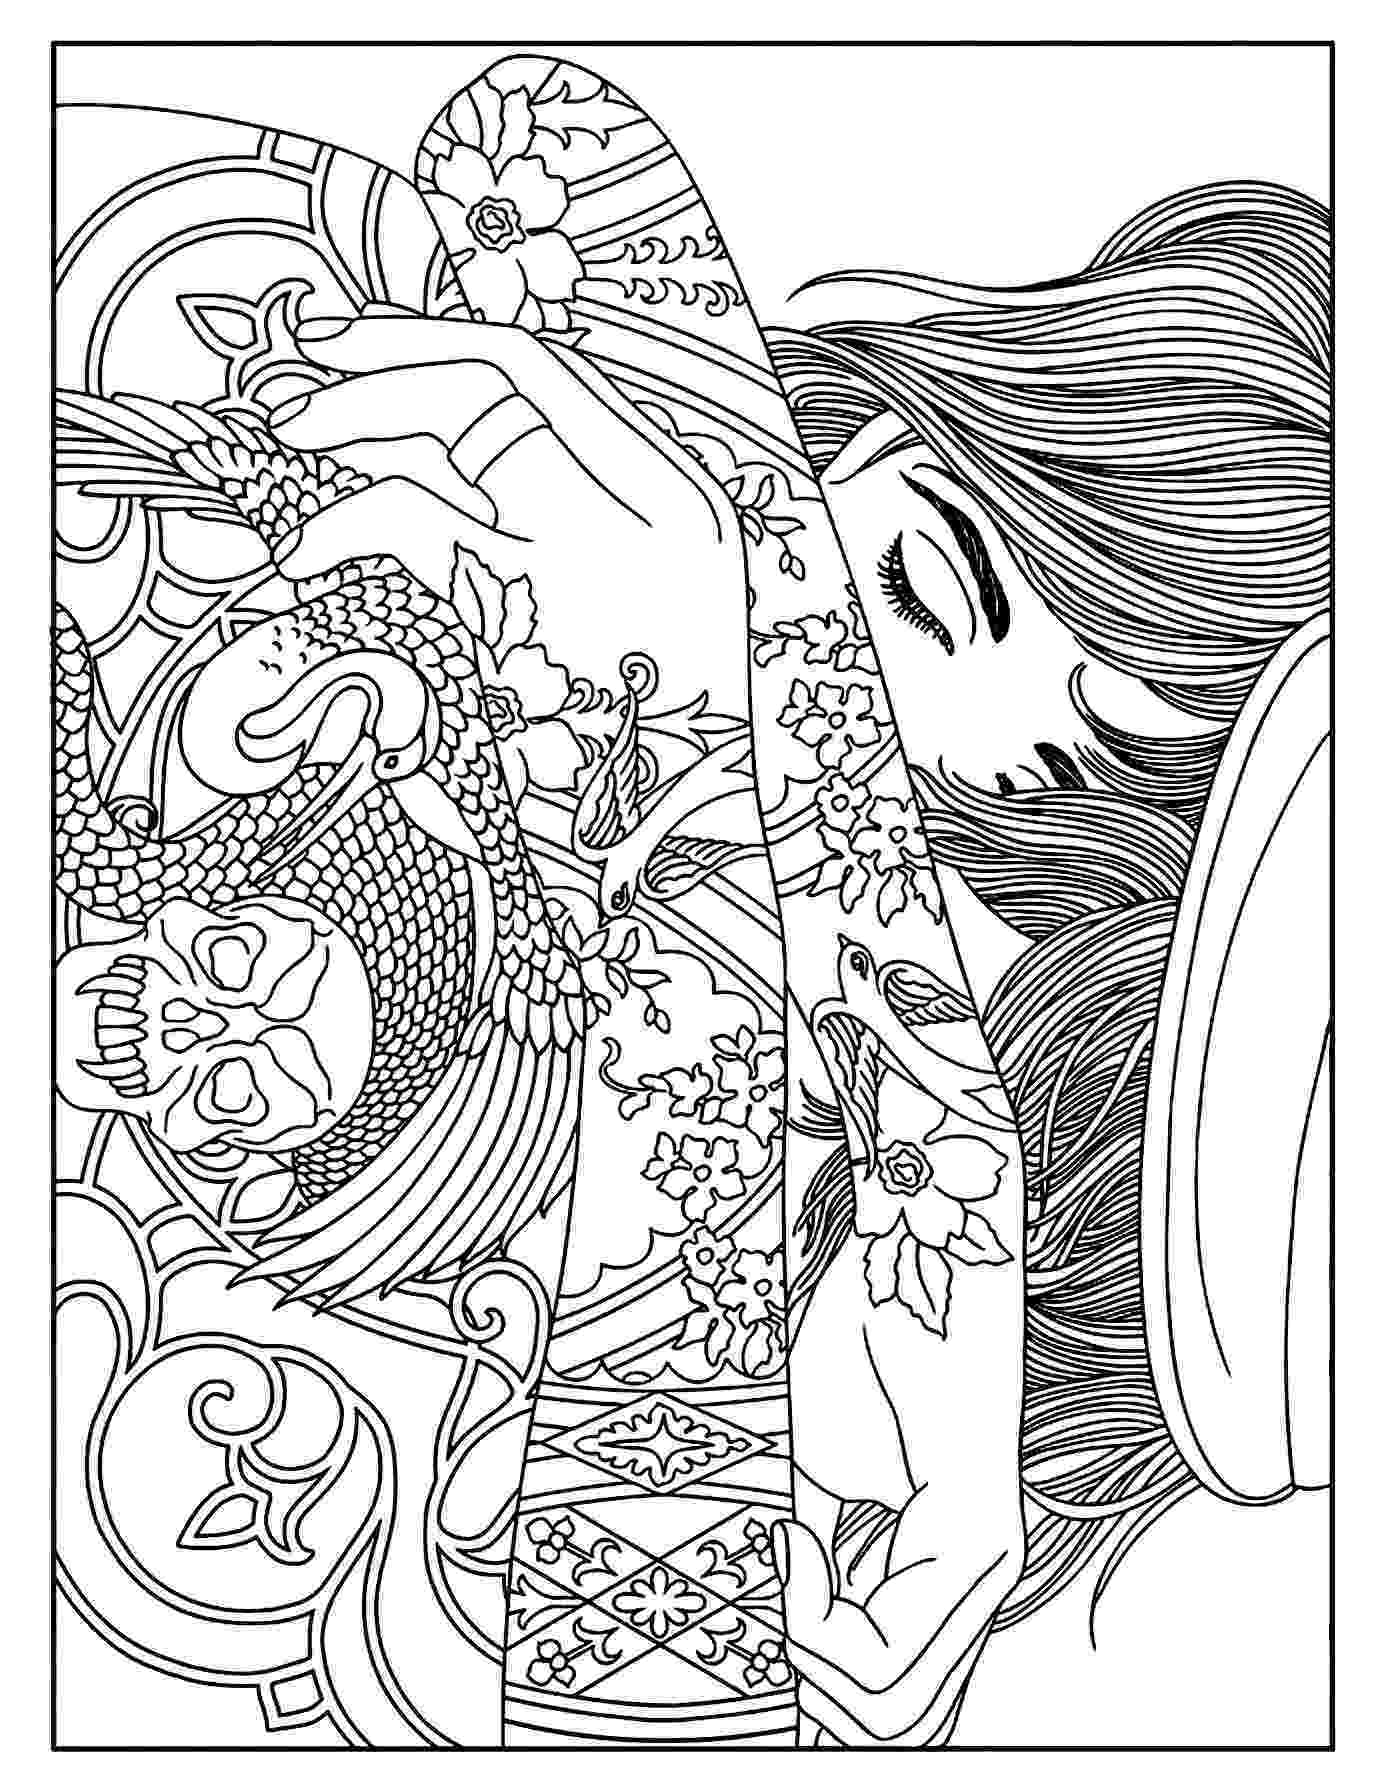 coloring pages for tattoos arm and hand tattoo 1 tattoos adult coloring pages tattoos pages for coloring